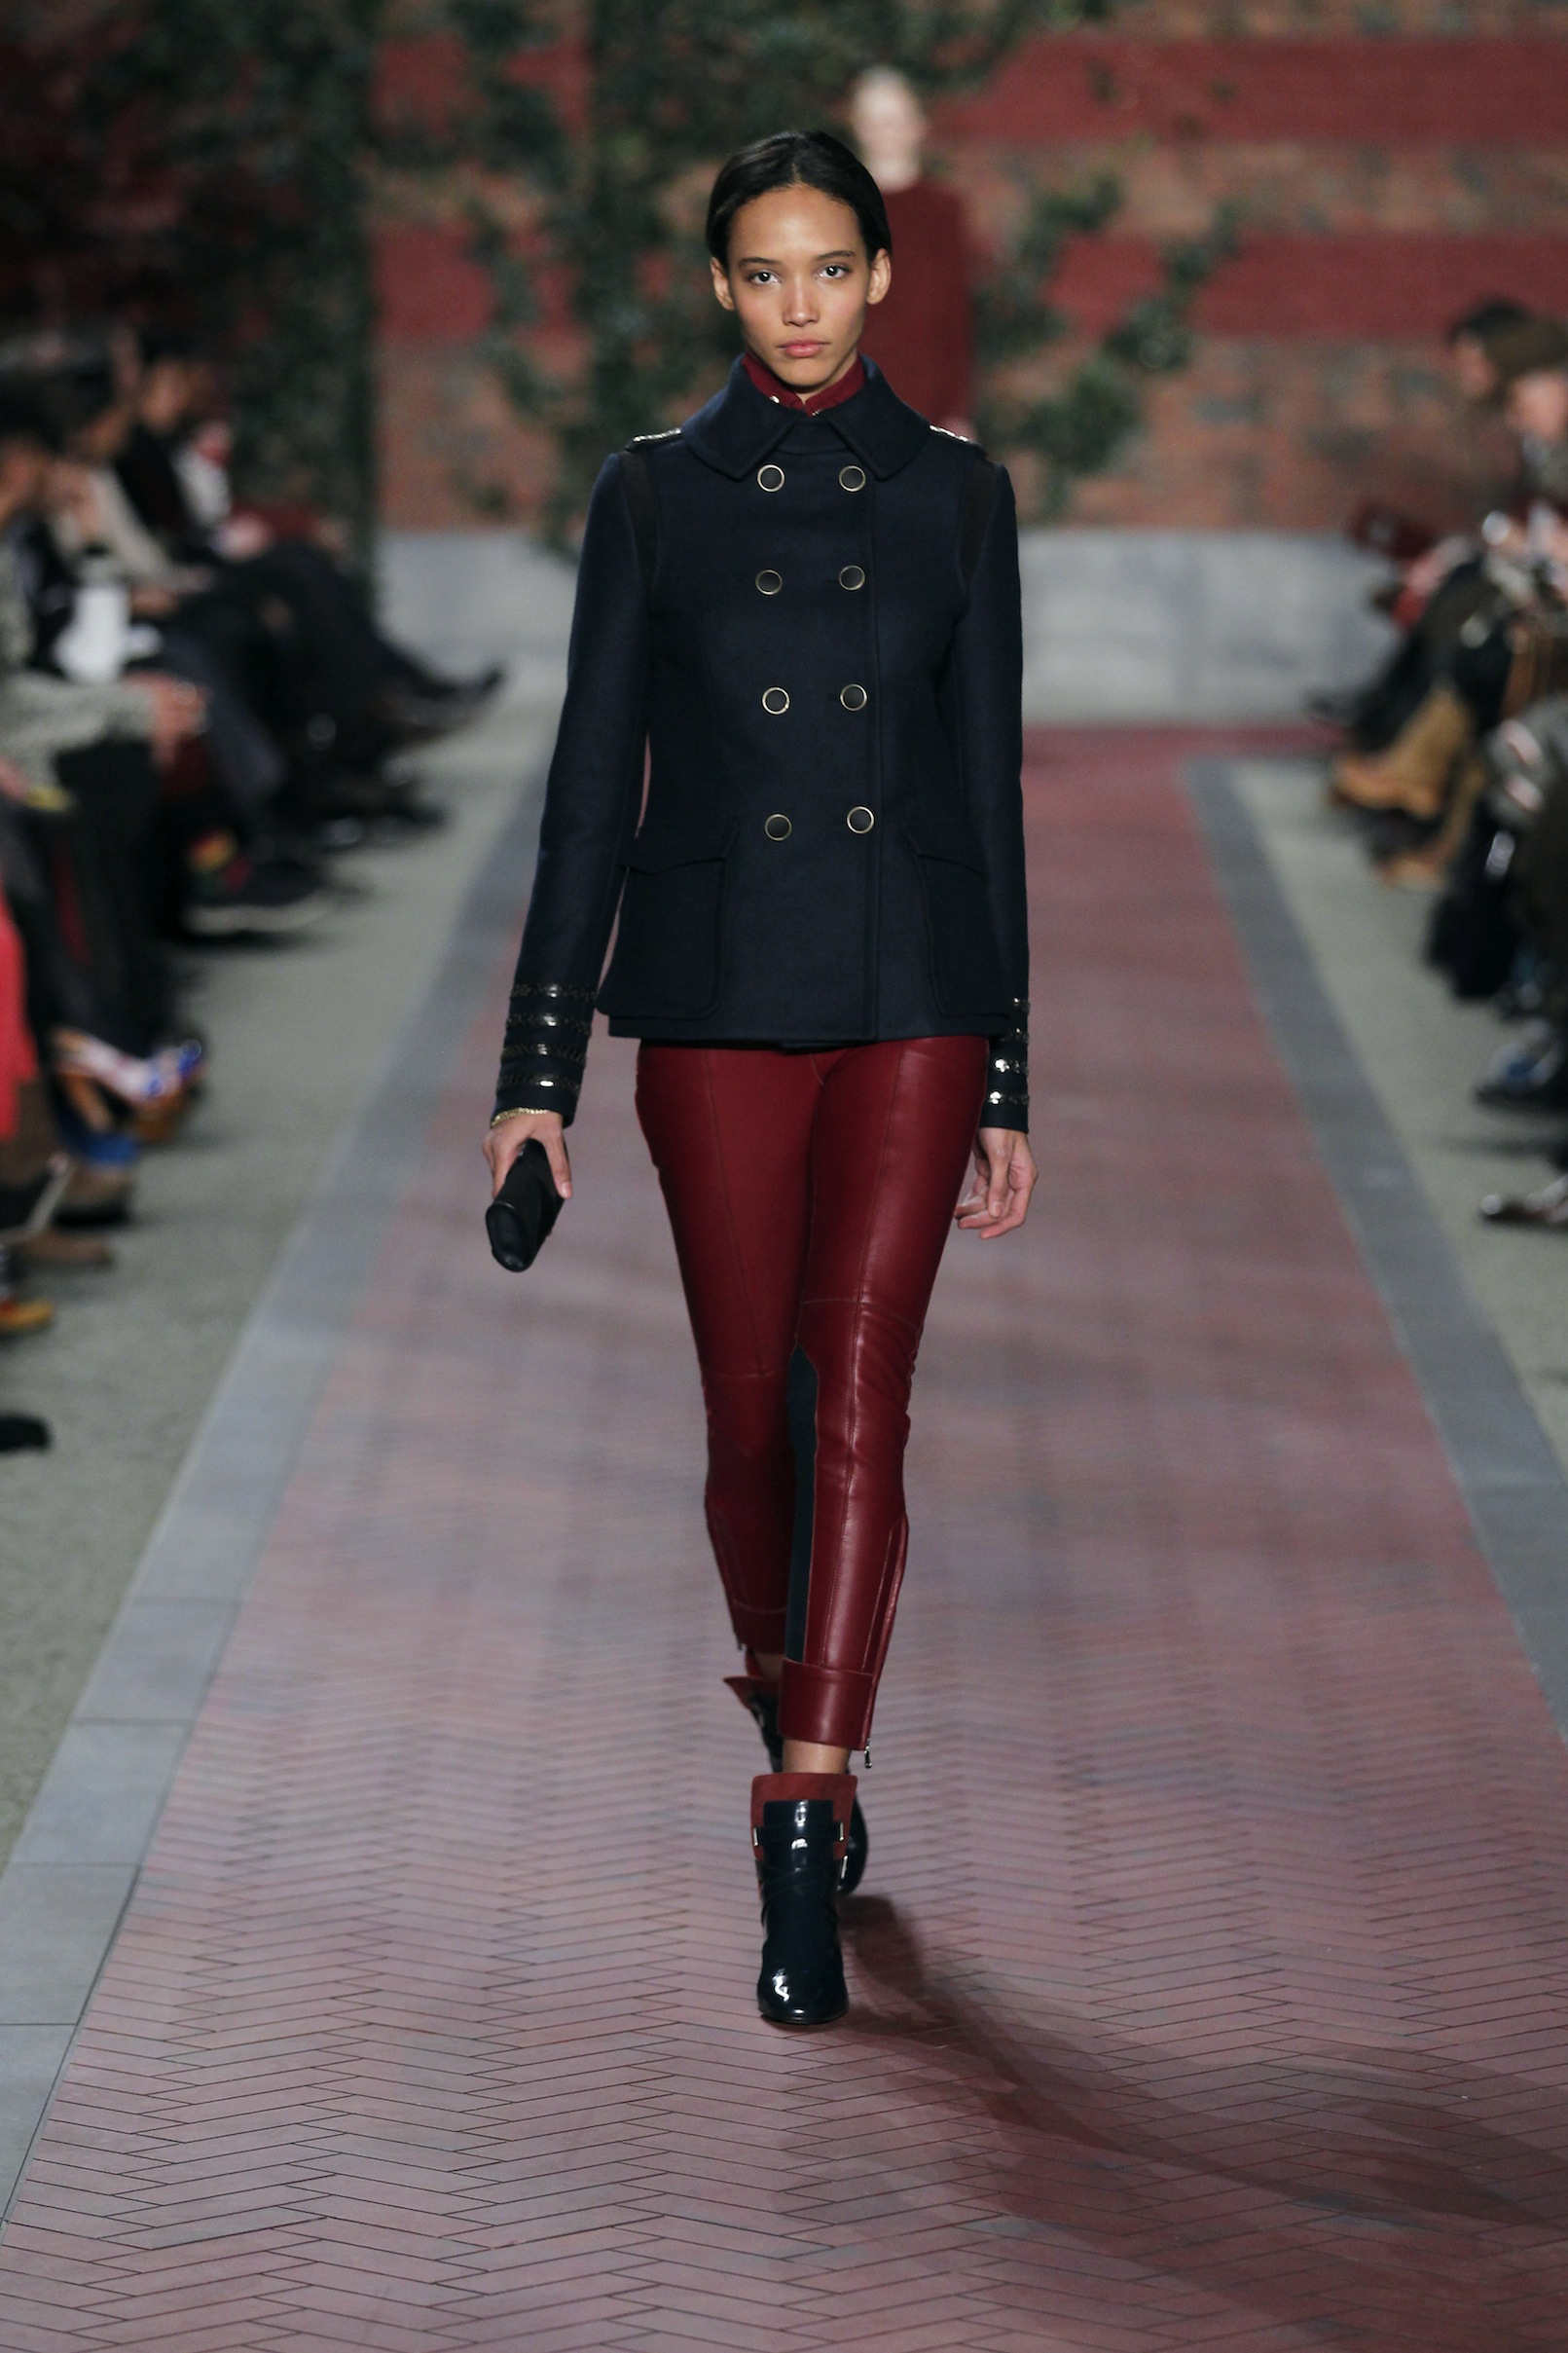 FW12 TOMMY HILFIGER WOMEN 2/12/2012 NEW YORK